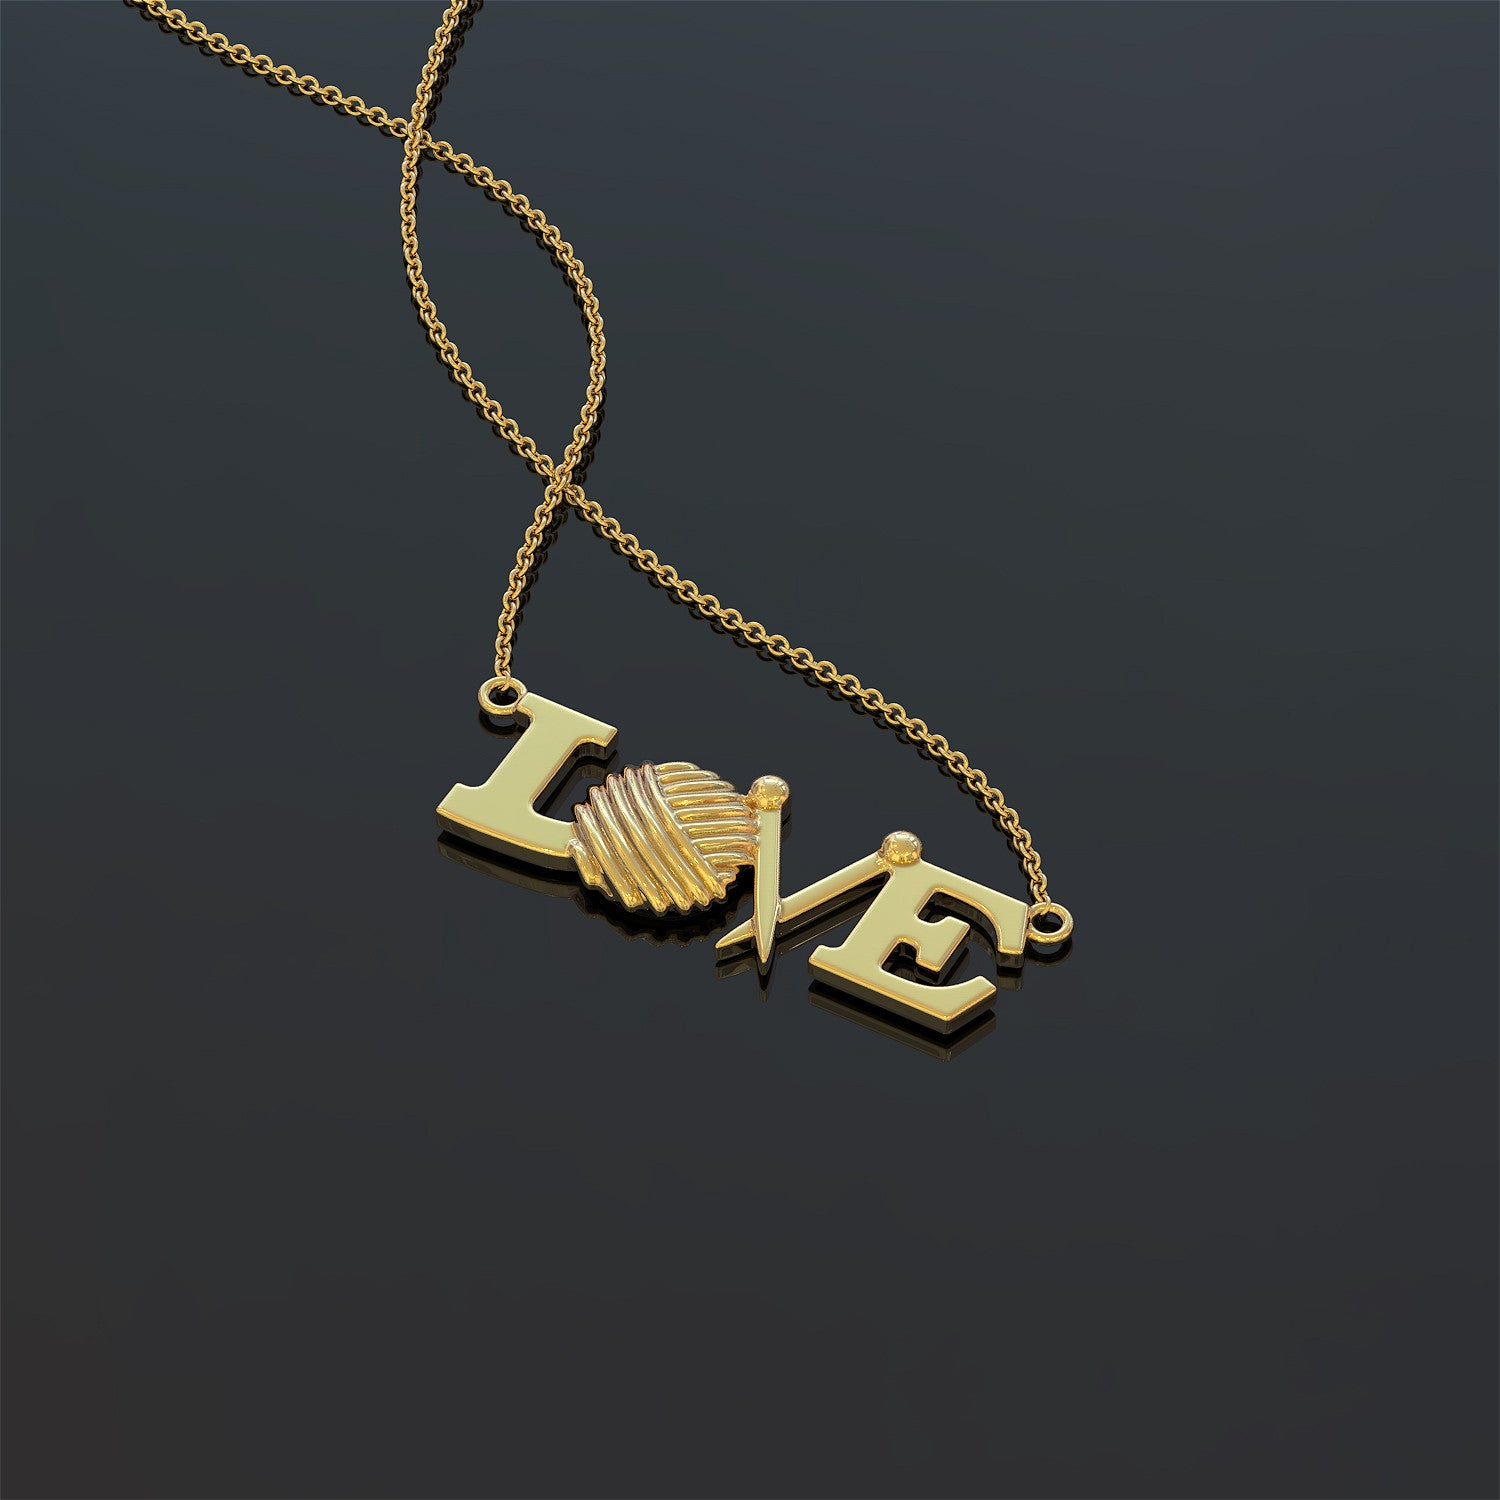 Love Knitting Necklace